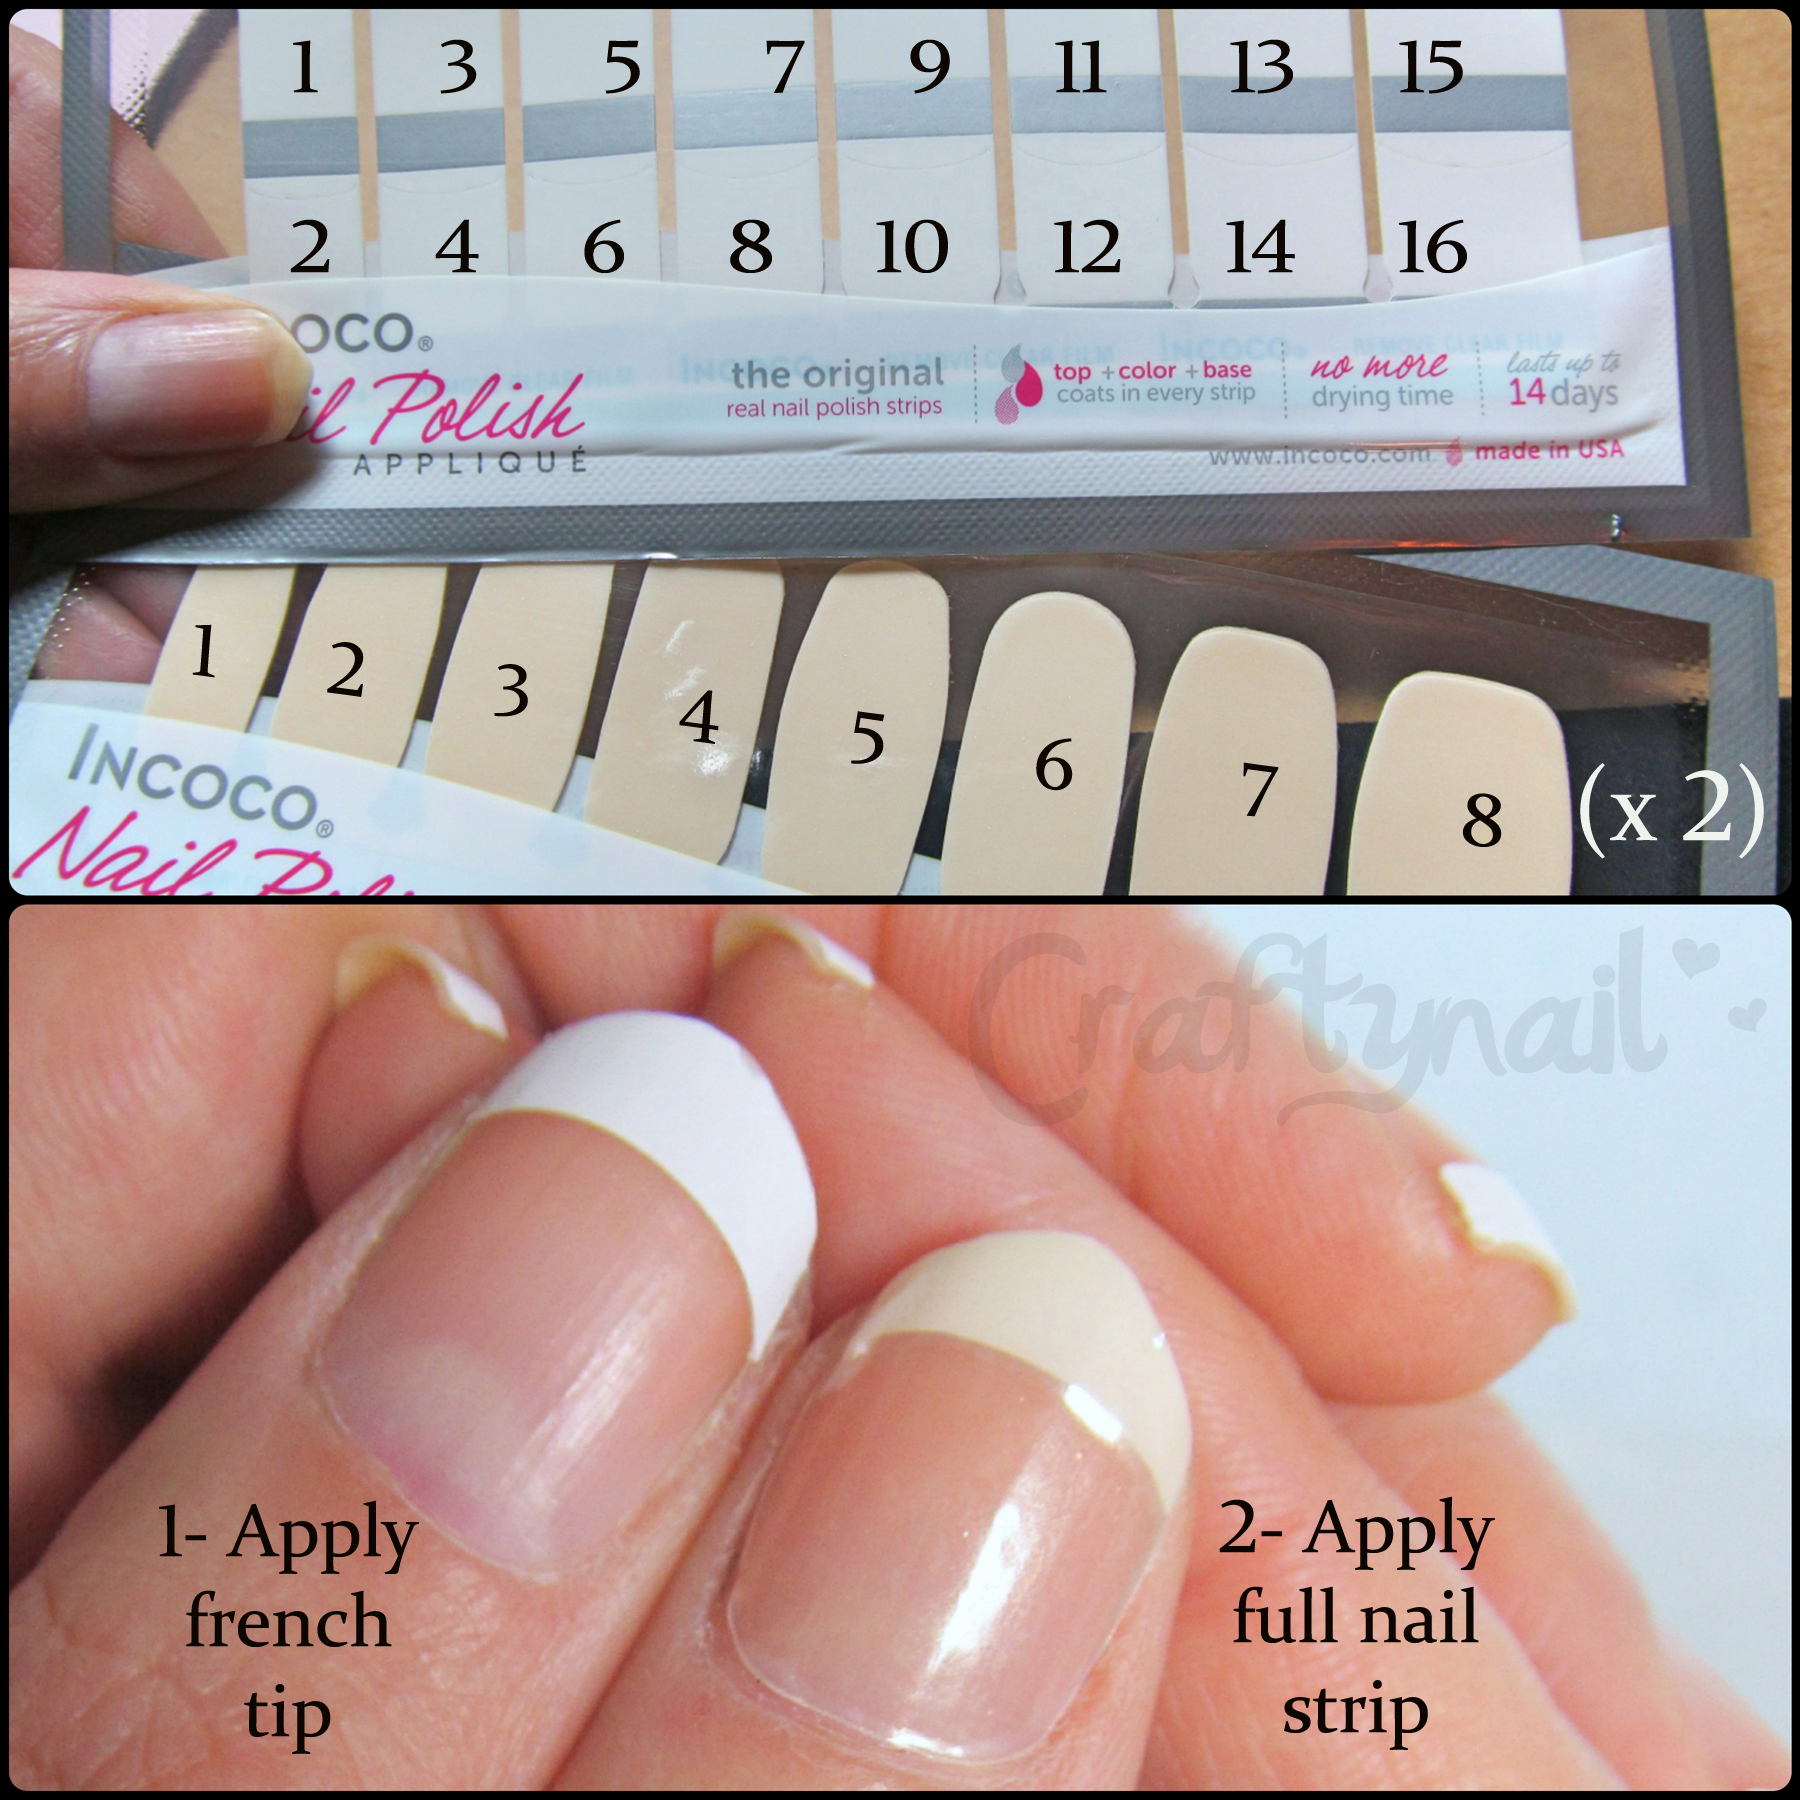 Incoco french manicure | Craftynail